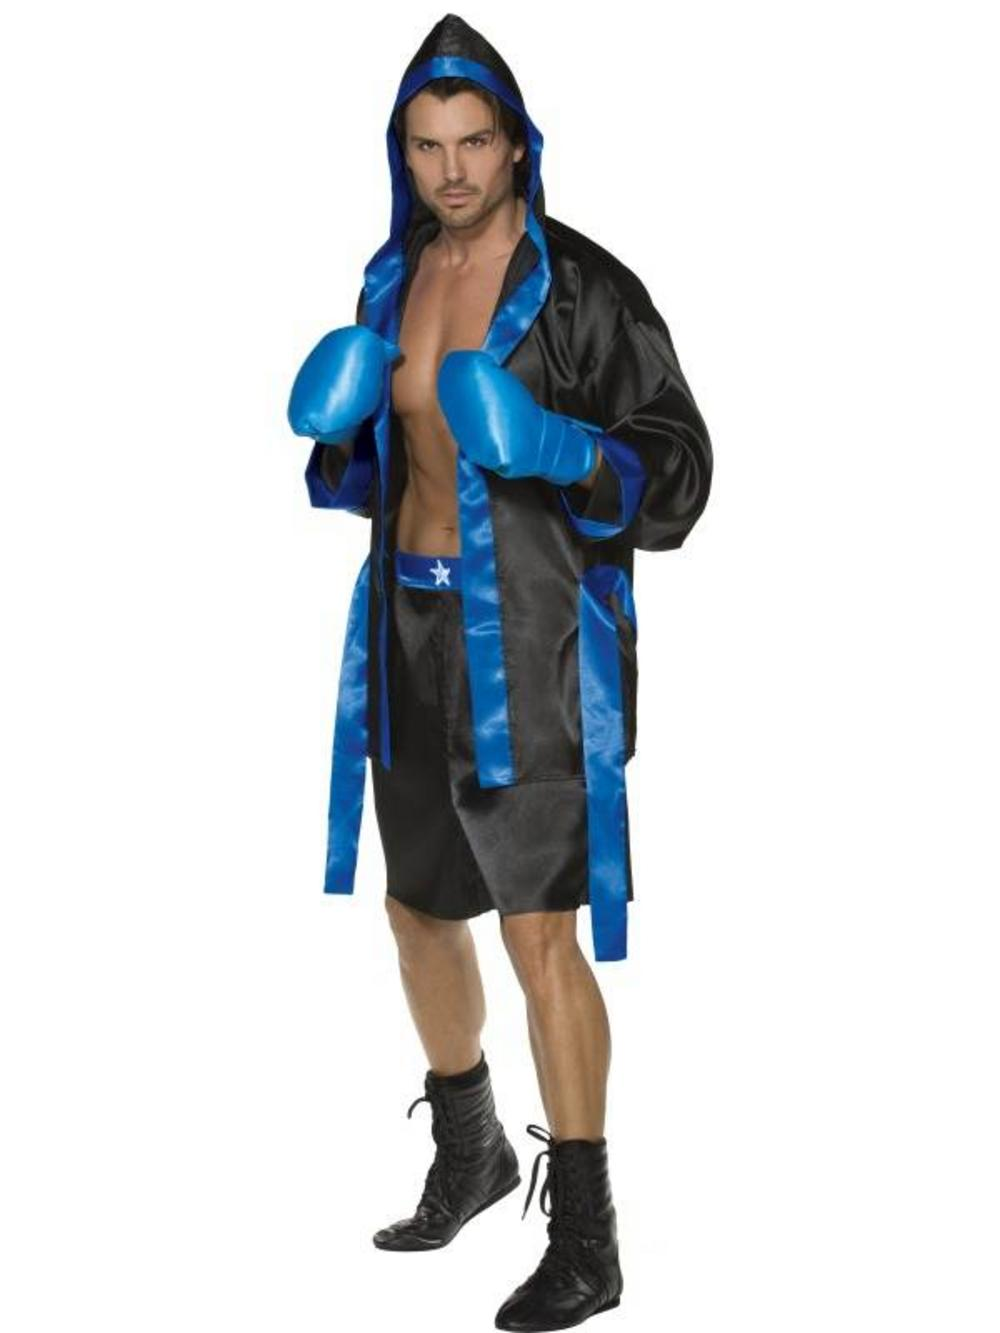 Down for the Count Boxing Costume